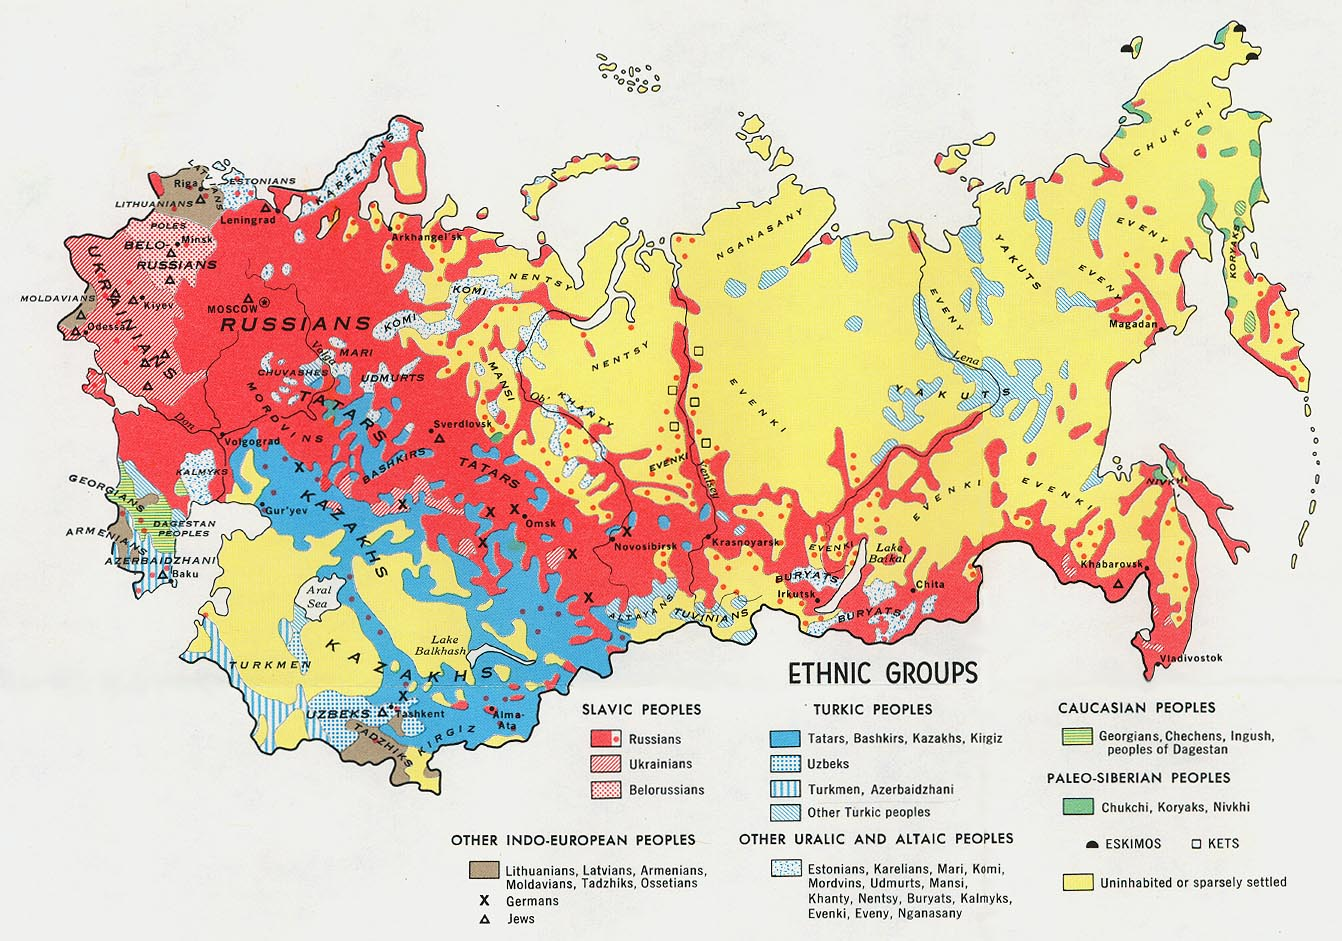 Map_of_the_ethnic_groups_living_in_the_Soviet_Union